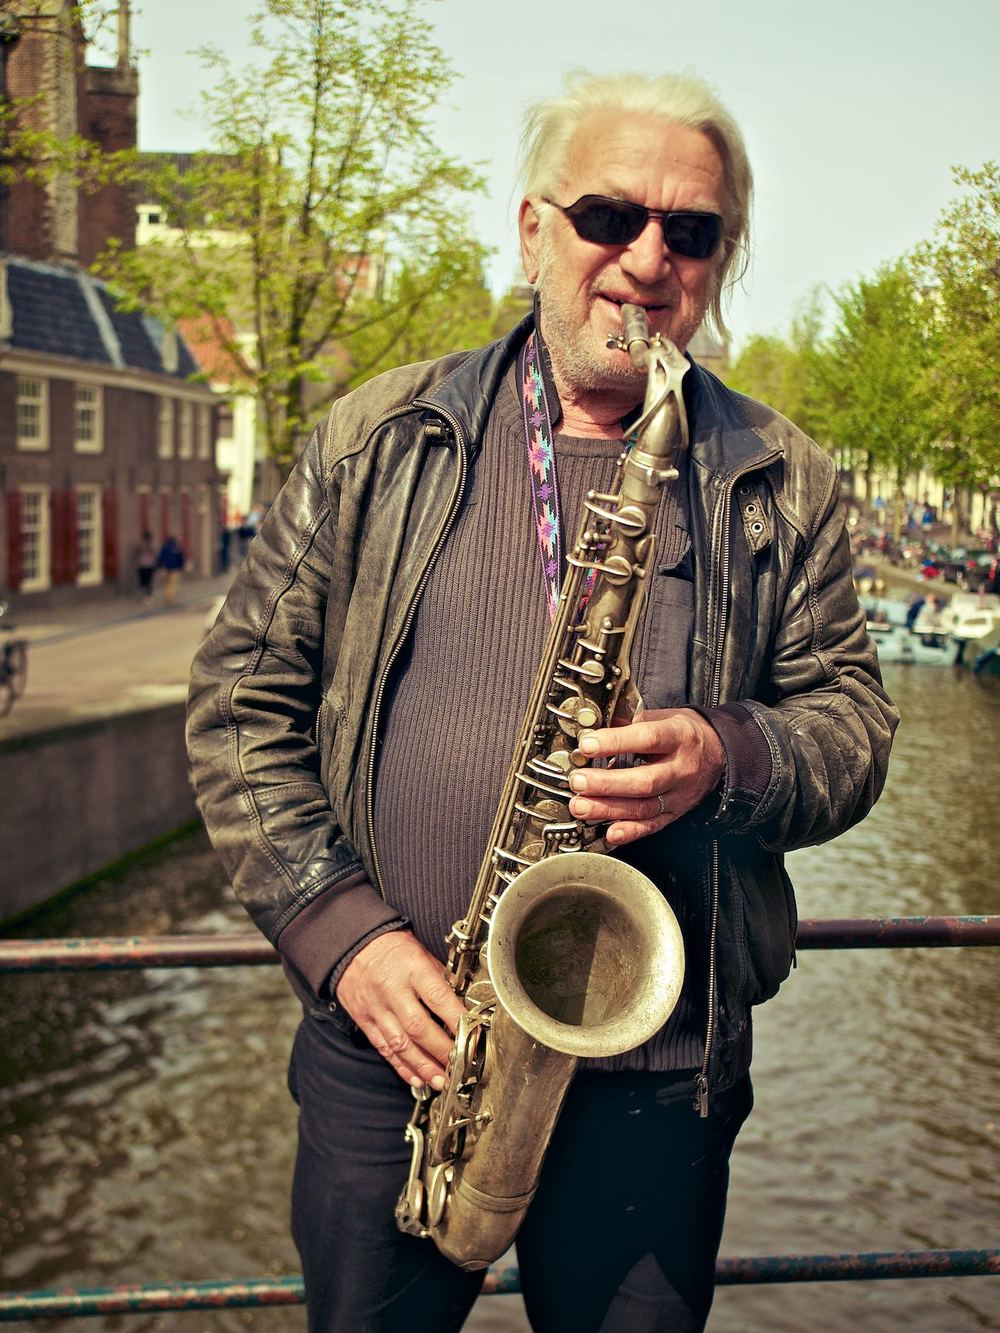 Saxophone on the Bridge